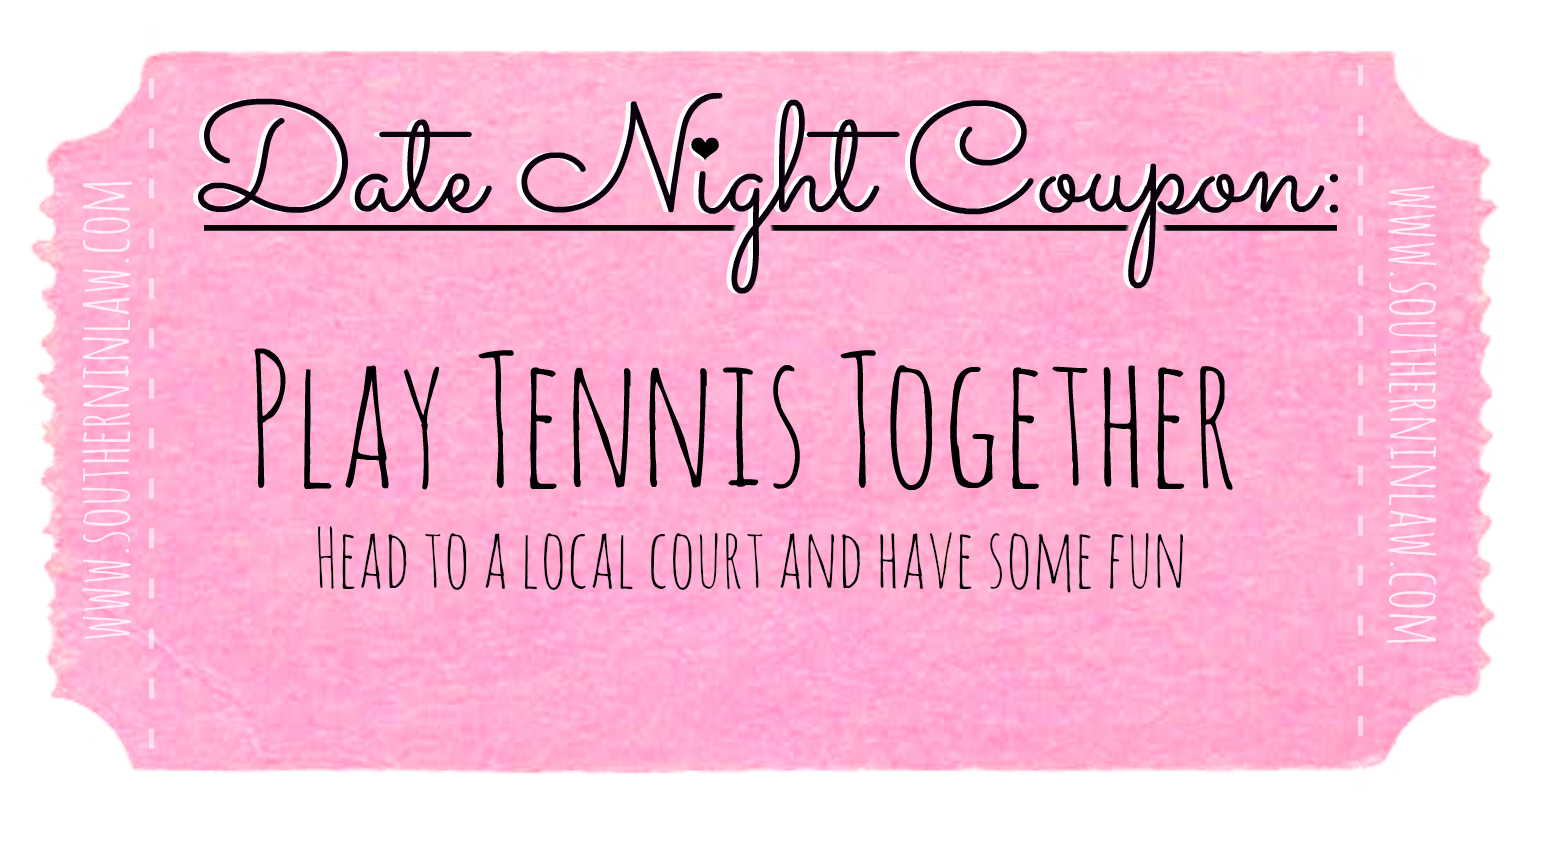 Affordable Date Ideas - Date Night Coupons - Play Tennis Together